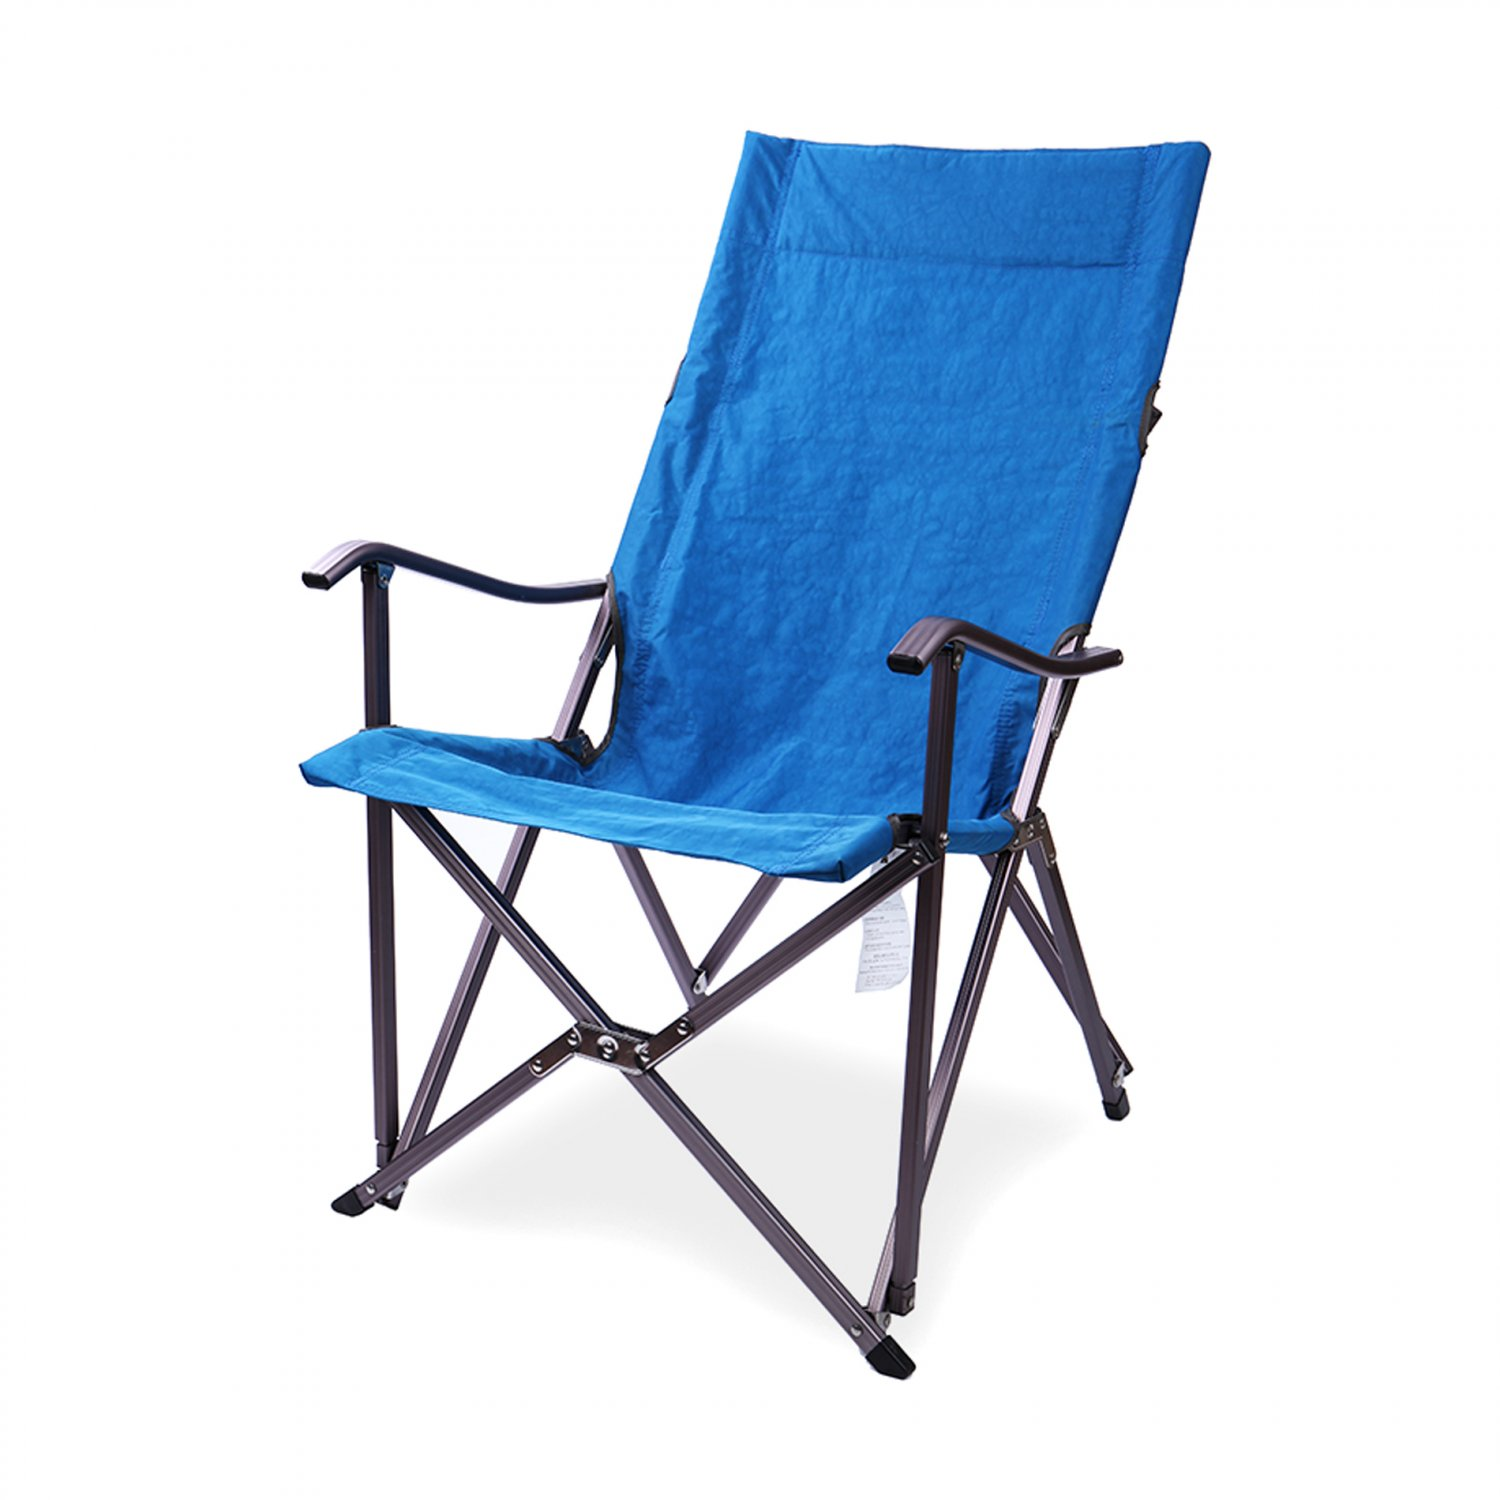 Lightweight Portable Folding Relax Chair Camping Seat W/ Carry Bag Blue(Ship US Only)SK-17138-BL{4}